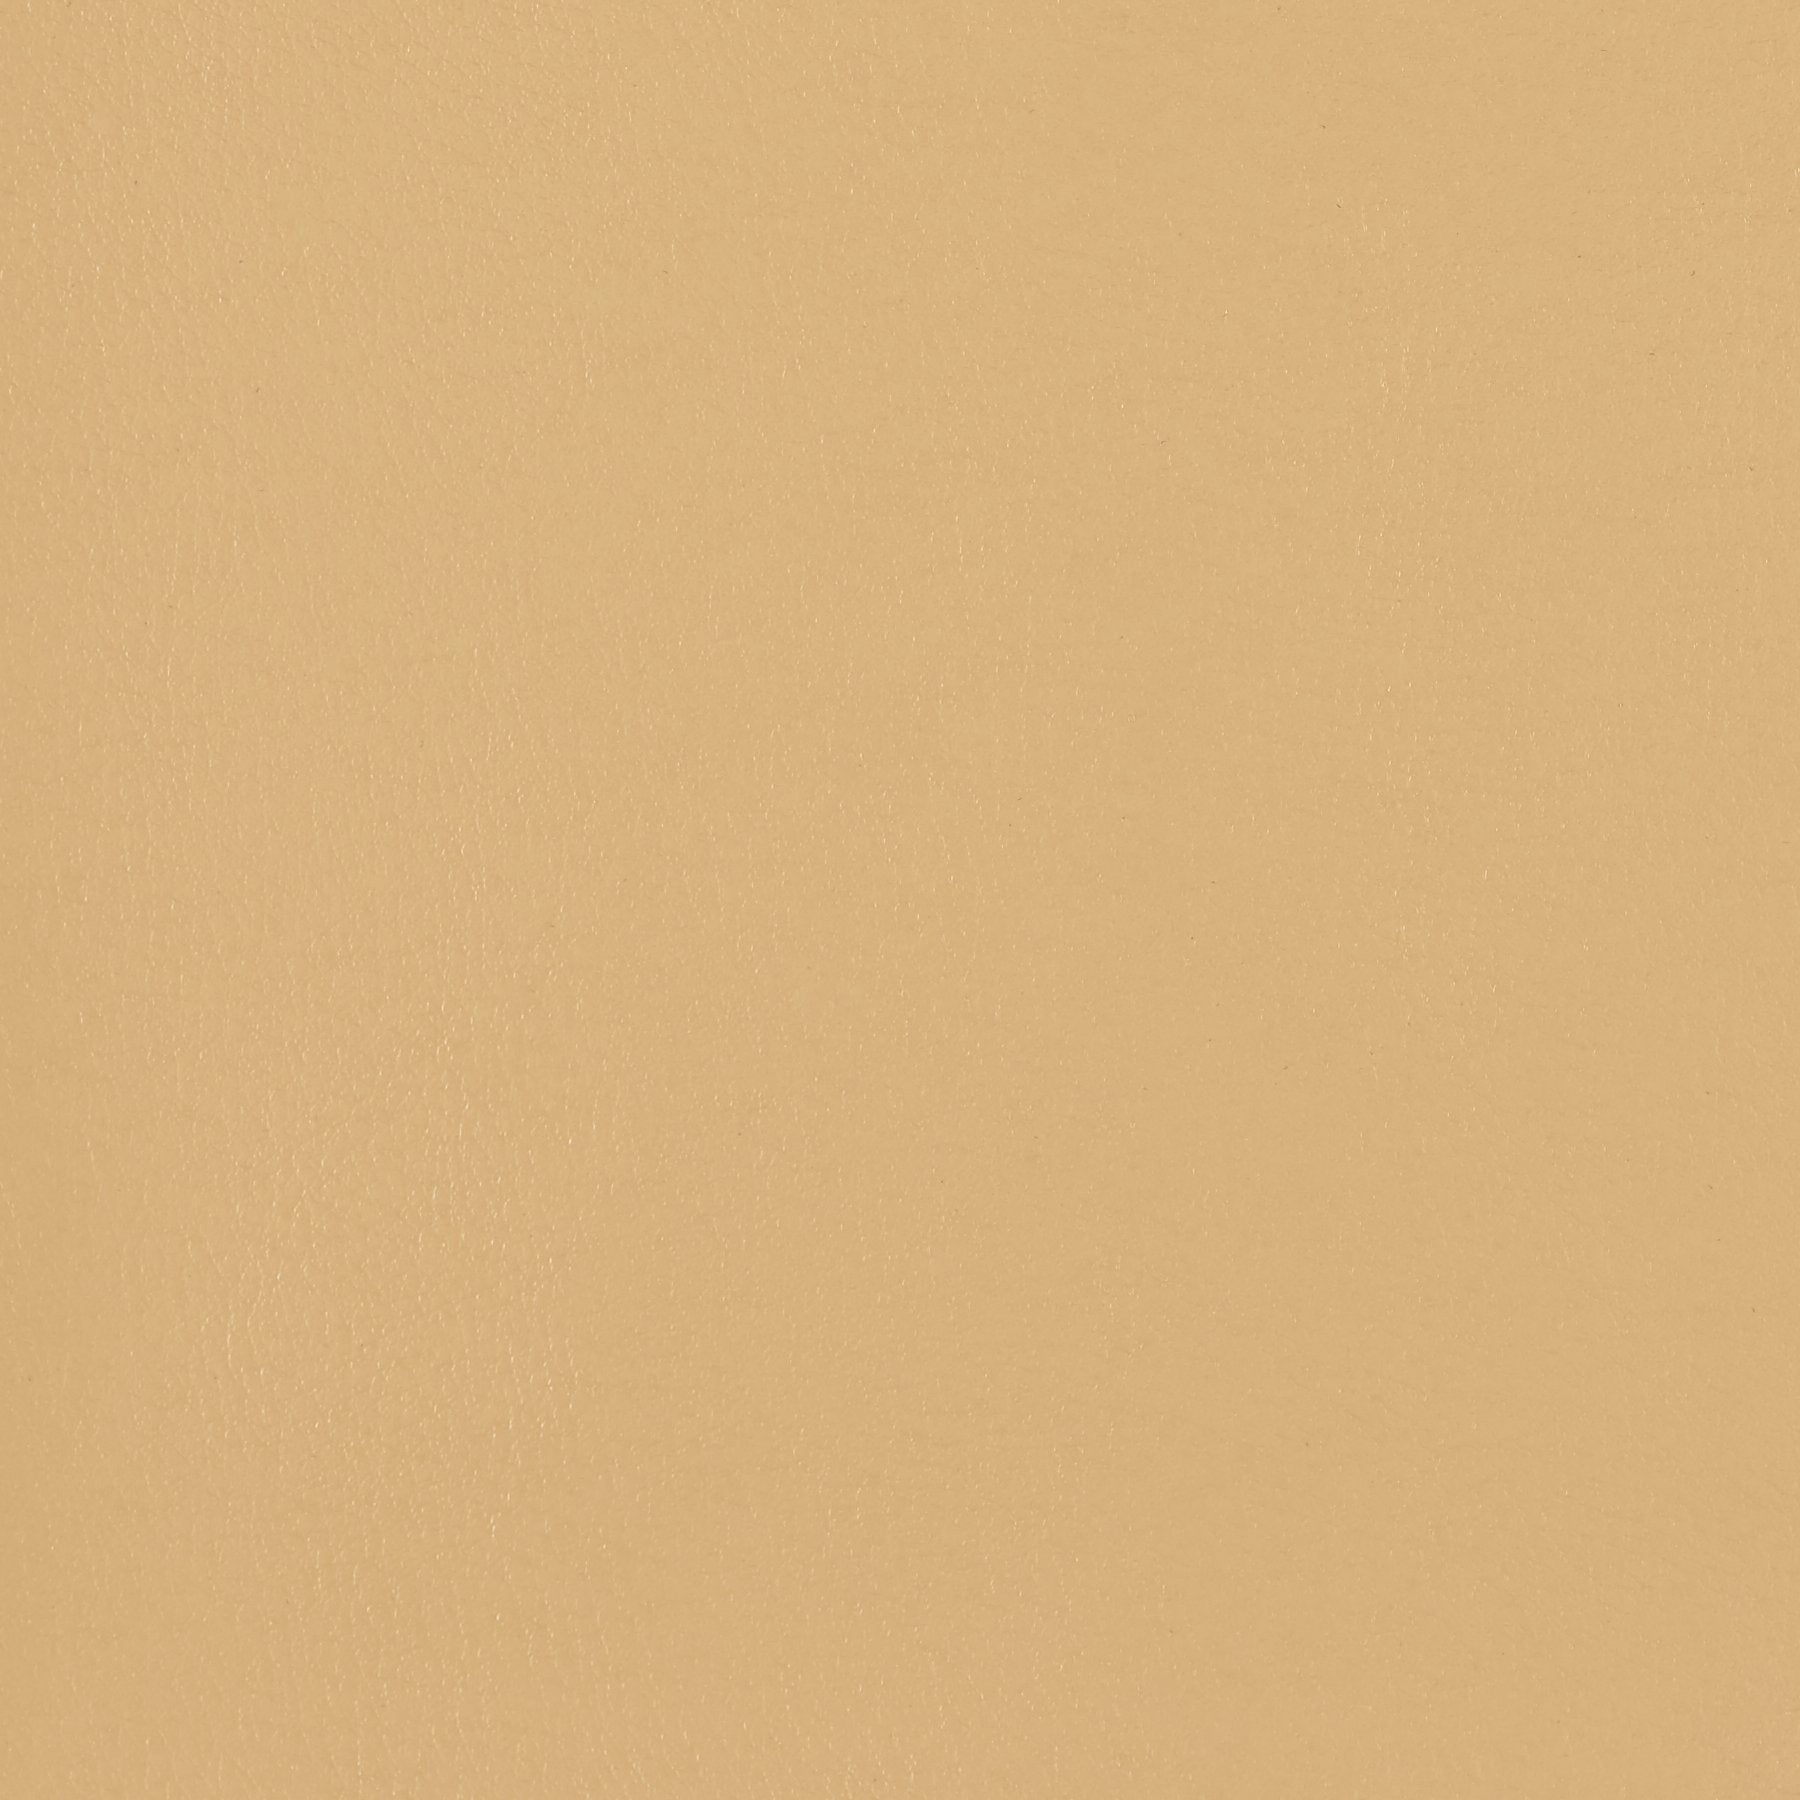 Fine Grain - French Beige - 4046 - 15